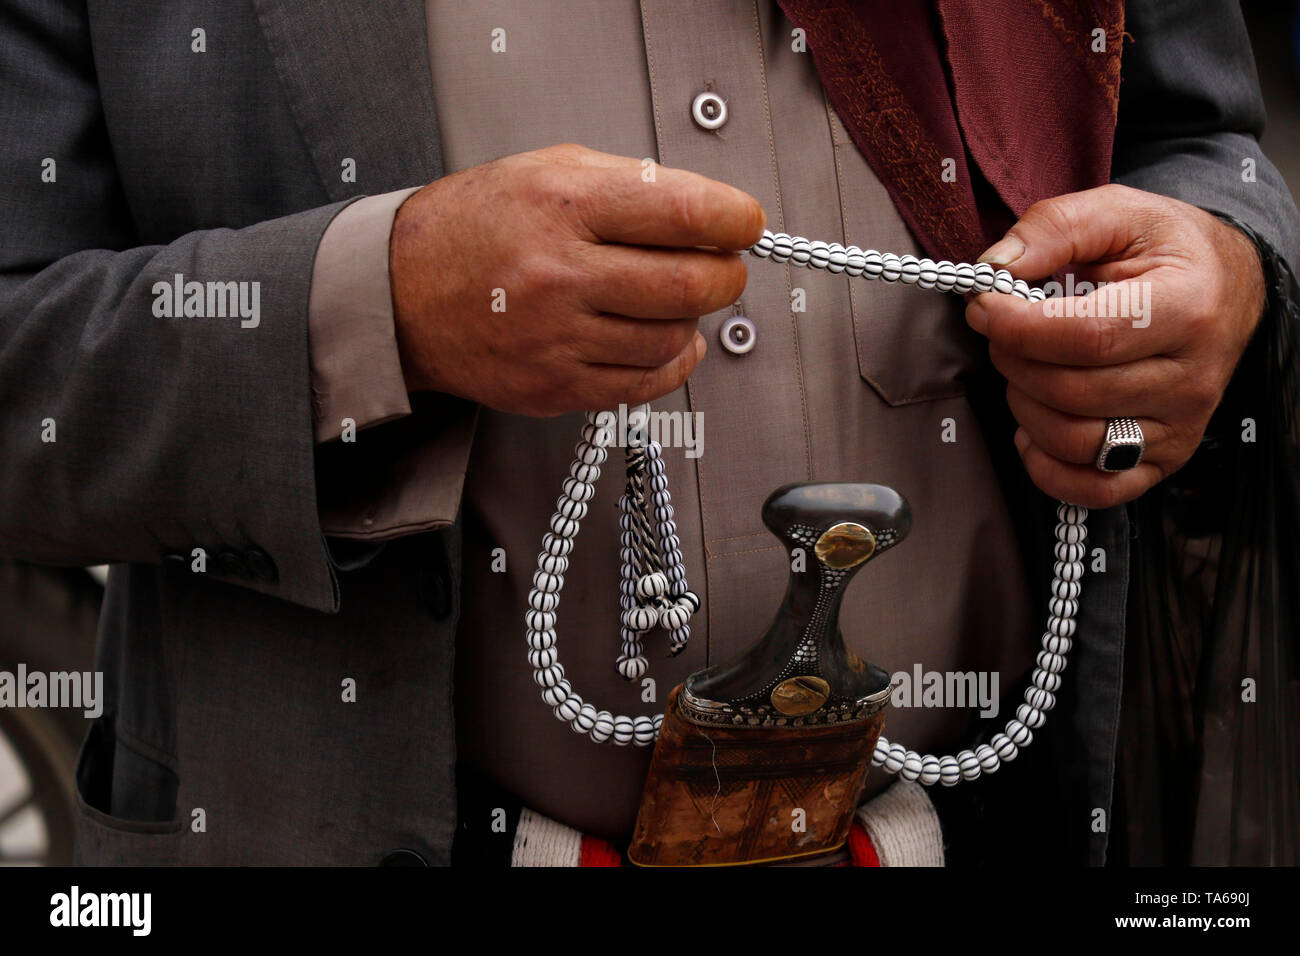 Sanaa, Yemen. 22nd May, 2019. A man holds a rosary during the Muslim holy month of Ramadan in Sanaa, Yemen, on May 22, 2019. Rosary, or Tesbih, is a small string of prayer beads that is carried by many Yemeni men during the holy month of Ramadan. Credit: Mohammed Mohammed/Xinhua/Alamy Live News - Stock Image